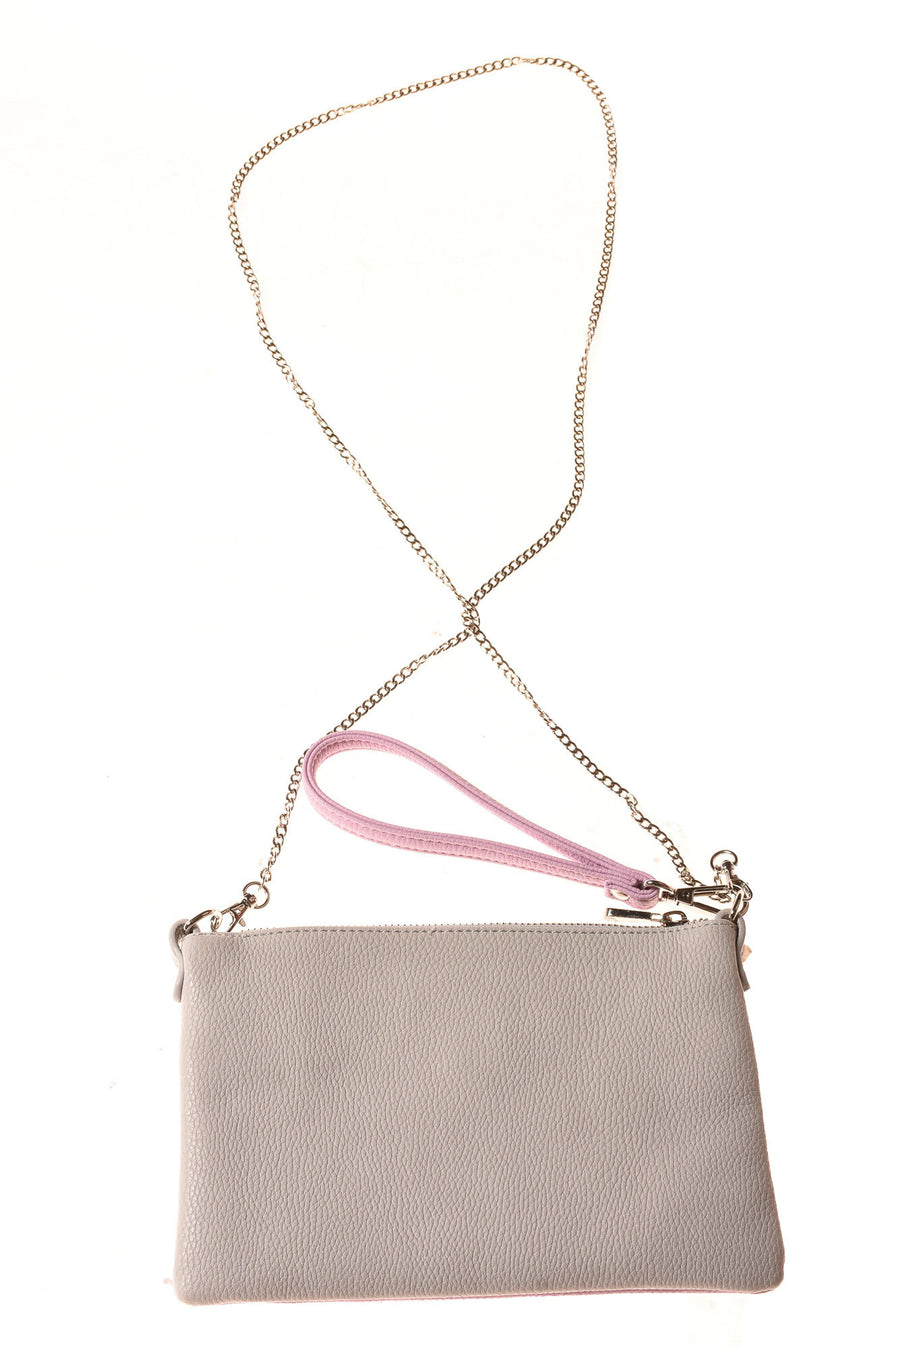 Women's Handbag By C